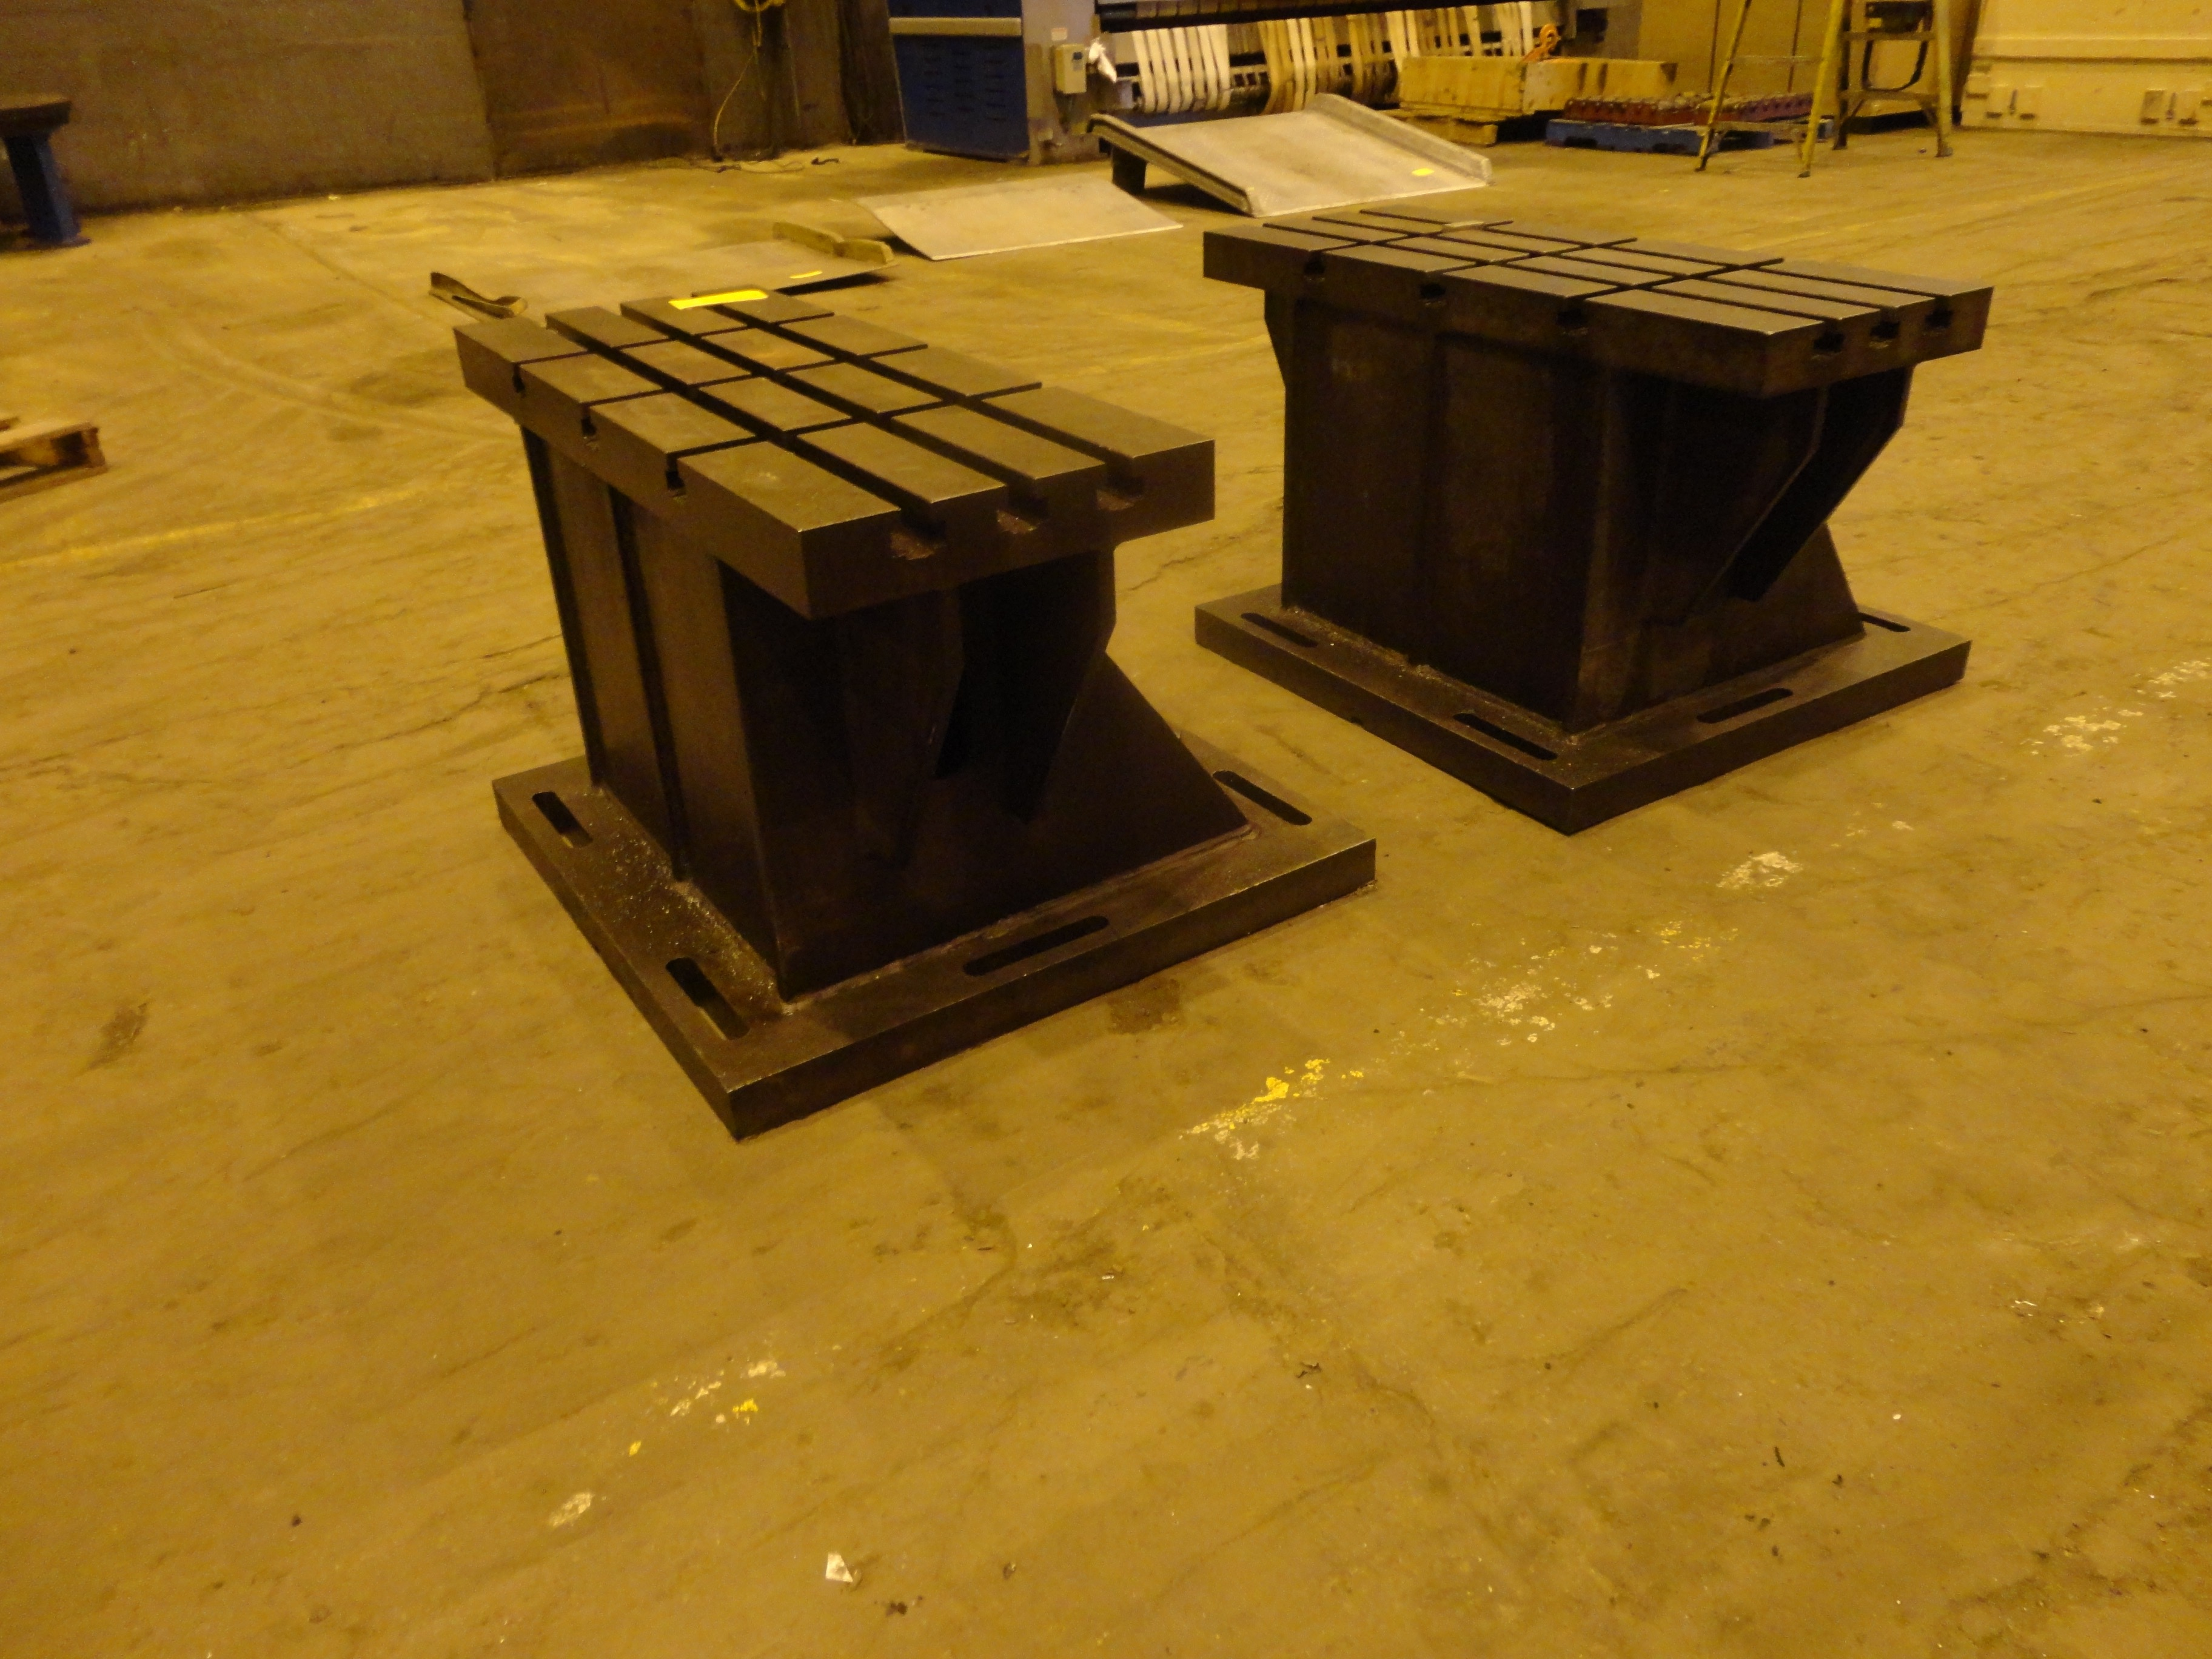 """Set of 2 T-Slotted Riser Blocks Knee Hold Down Plates 42""""L x 16"""" W x 25""""H - Image 2 of 13"""